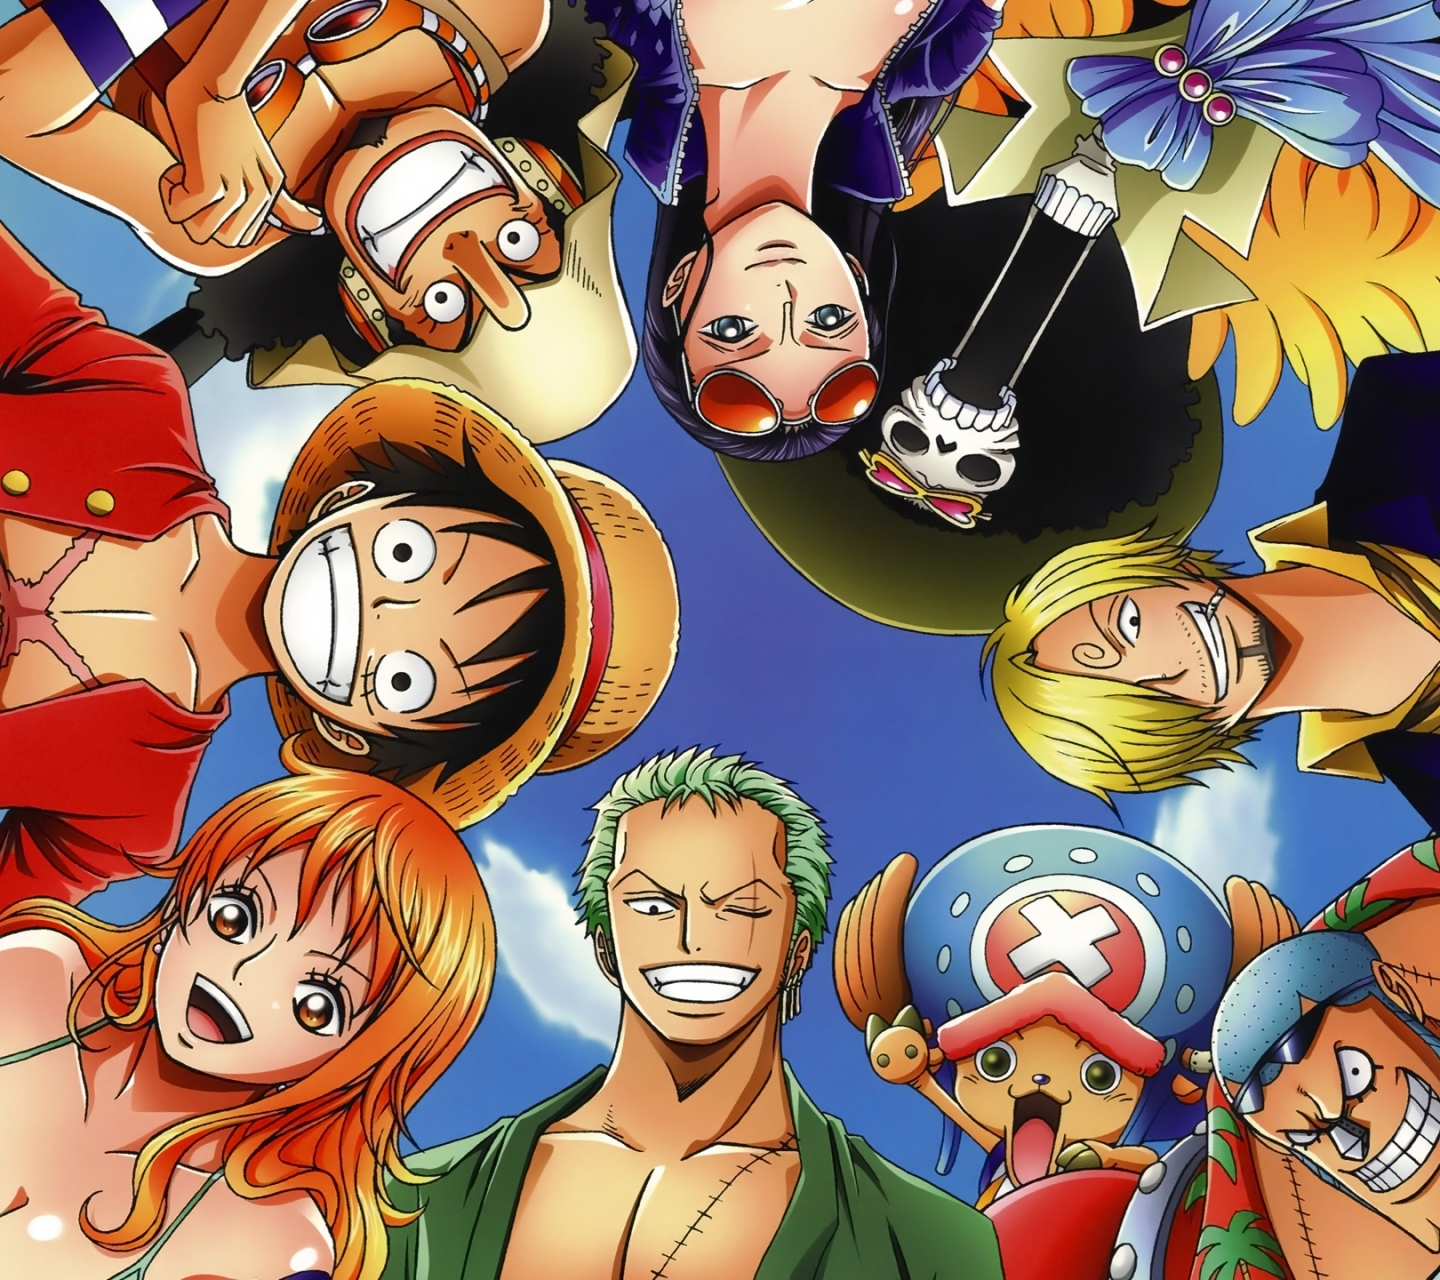 Anime One Piece 1440x1280 Wallpaper Id 504292 Mobile Abyss